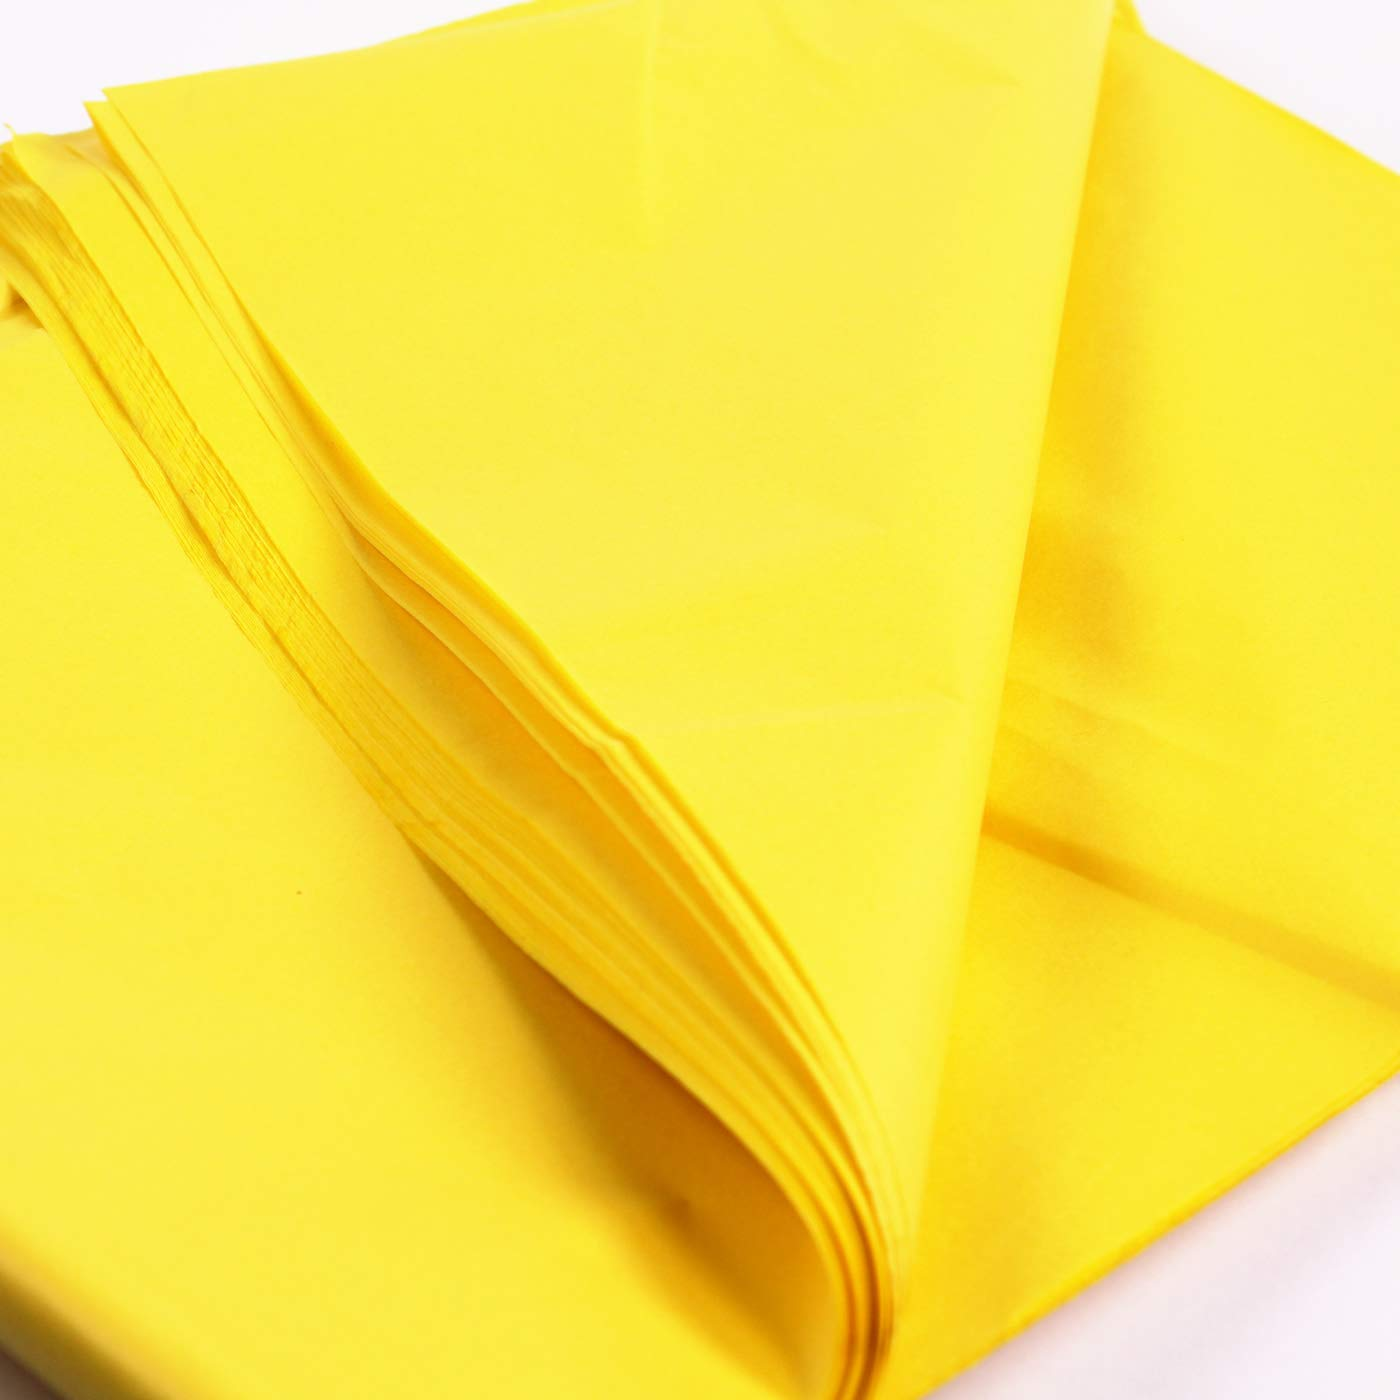 25 Lemon Yellow Tissue Paper Sheets, Acid Free Tissue Paper, Art Tissue Paper, Gift Wrap Tissue, Tissue for Decorations